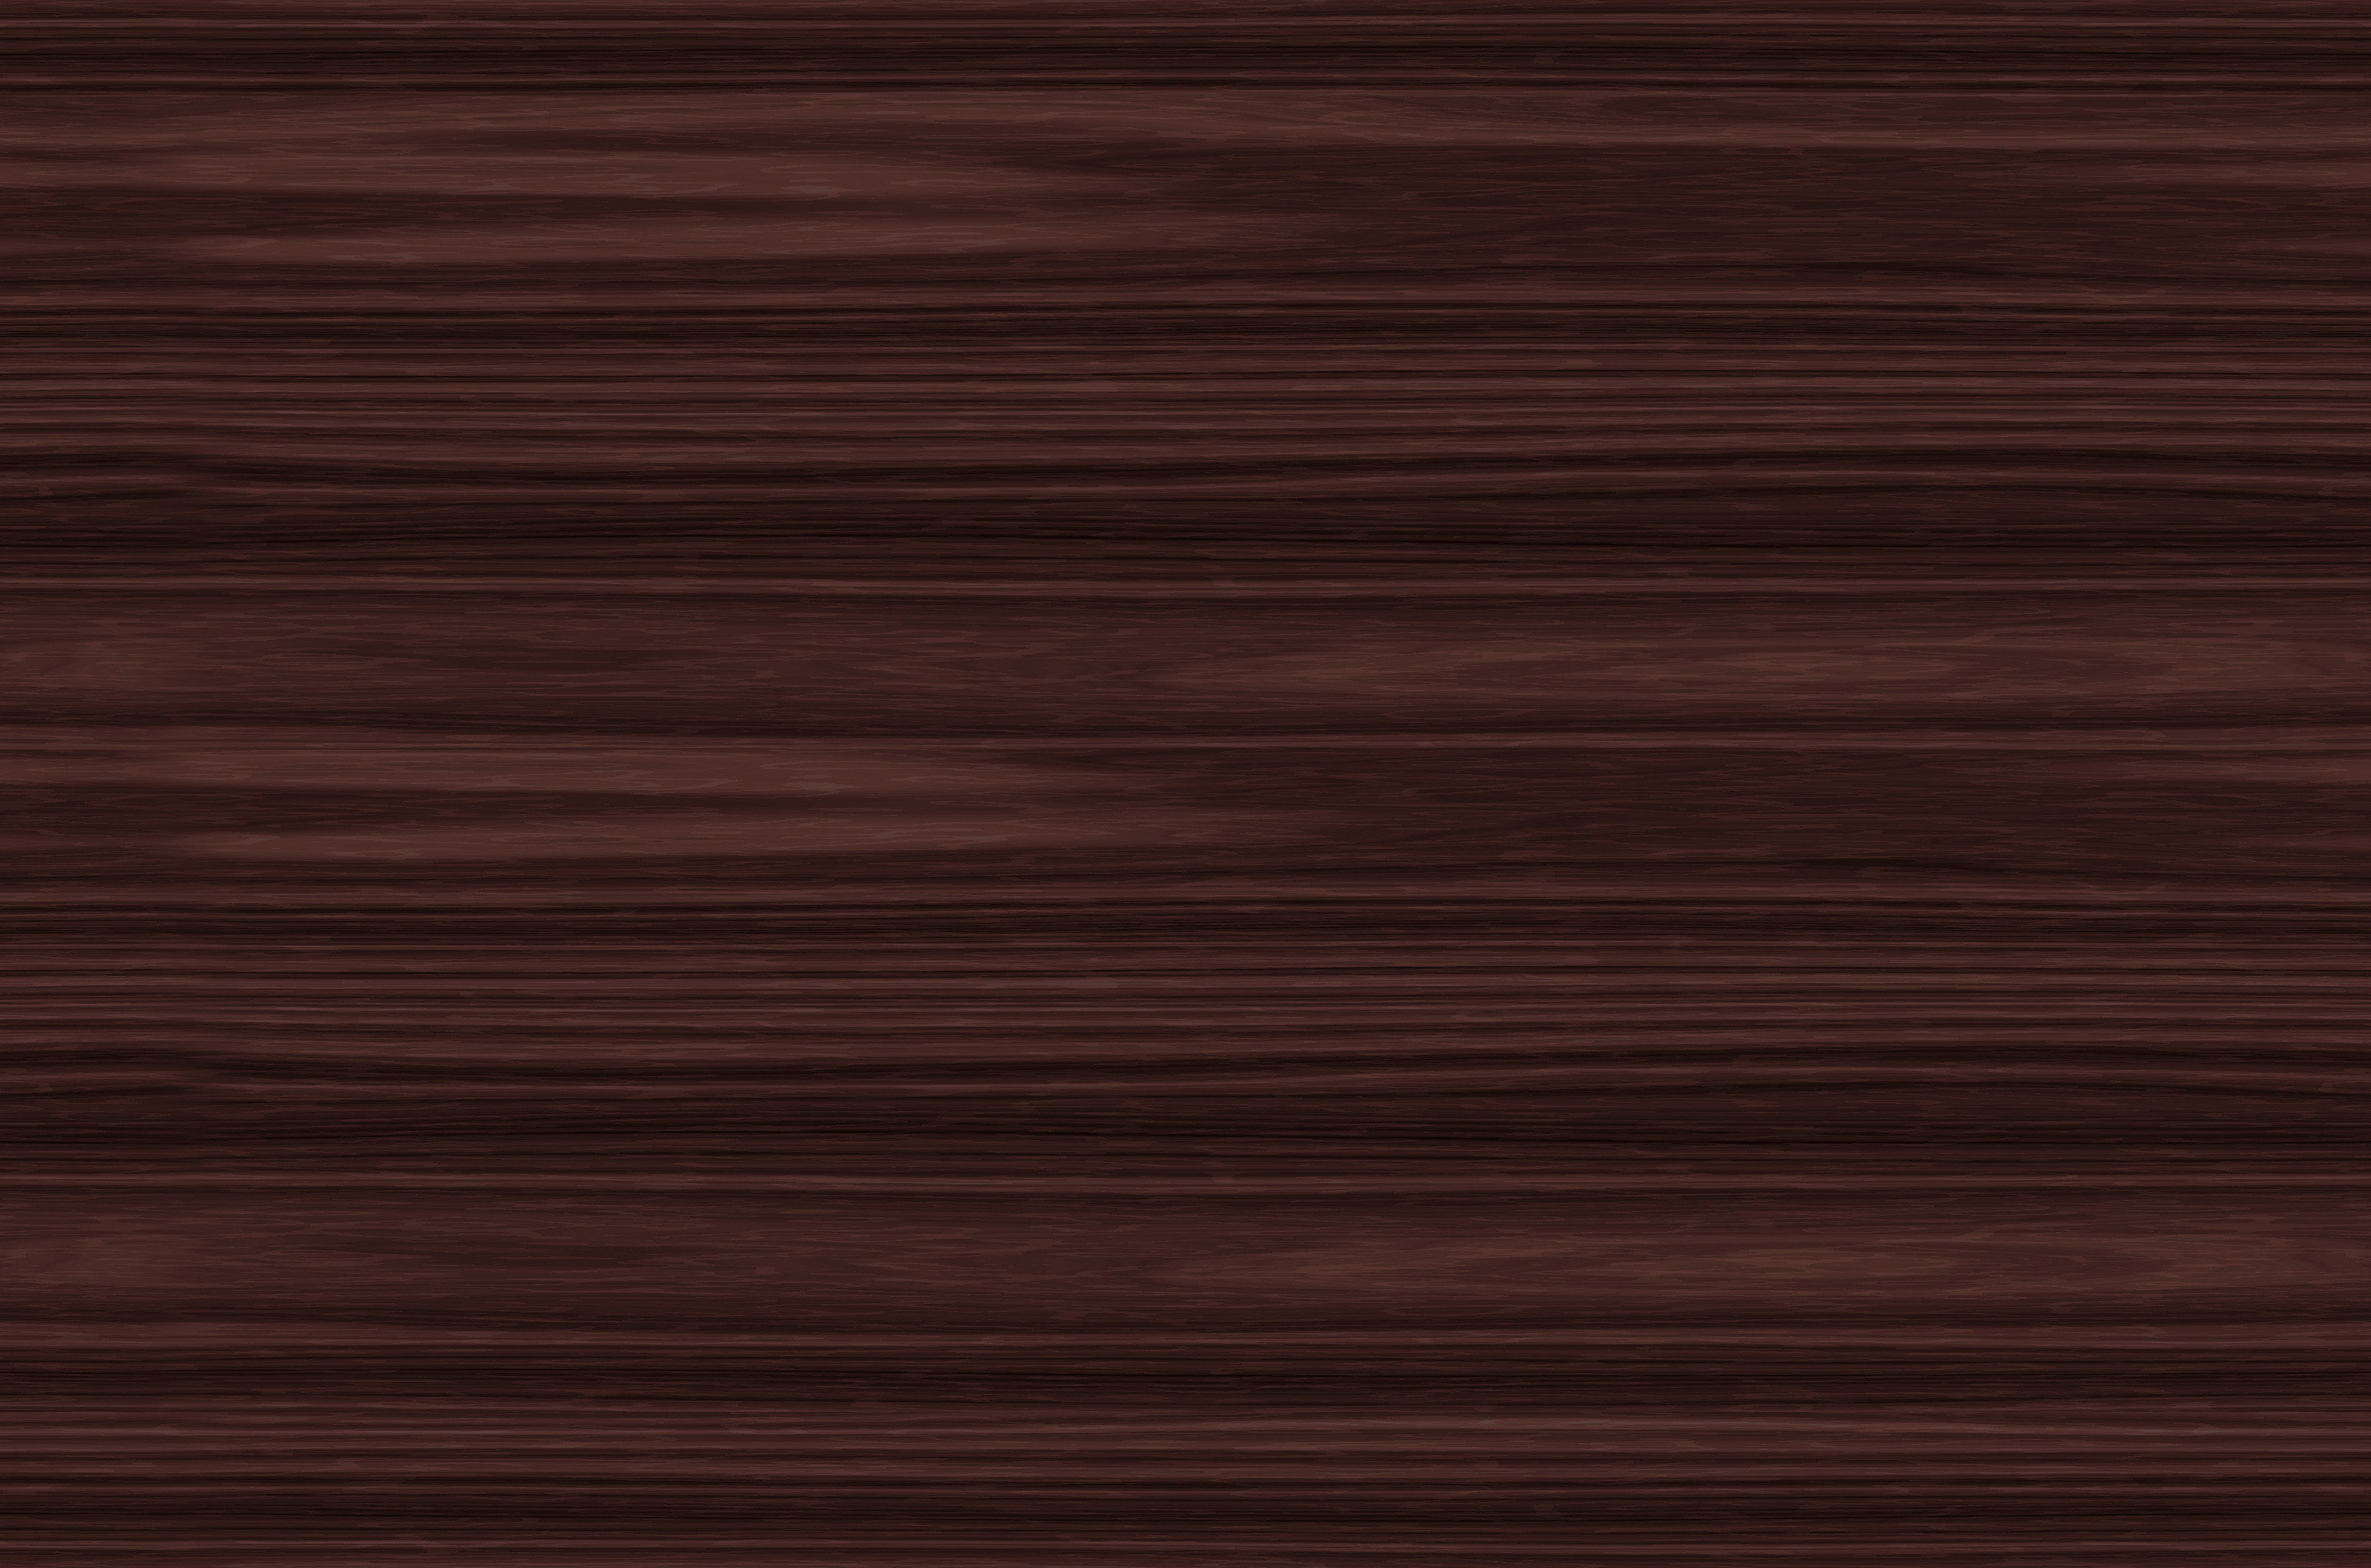 Dark Brown Wood Texture 3096 x 2048